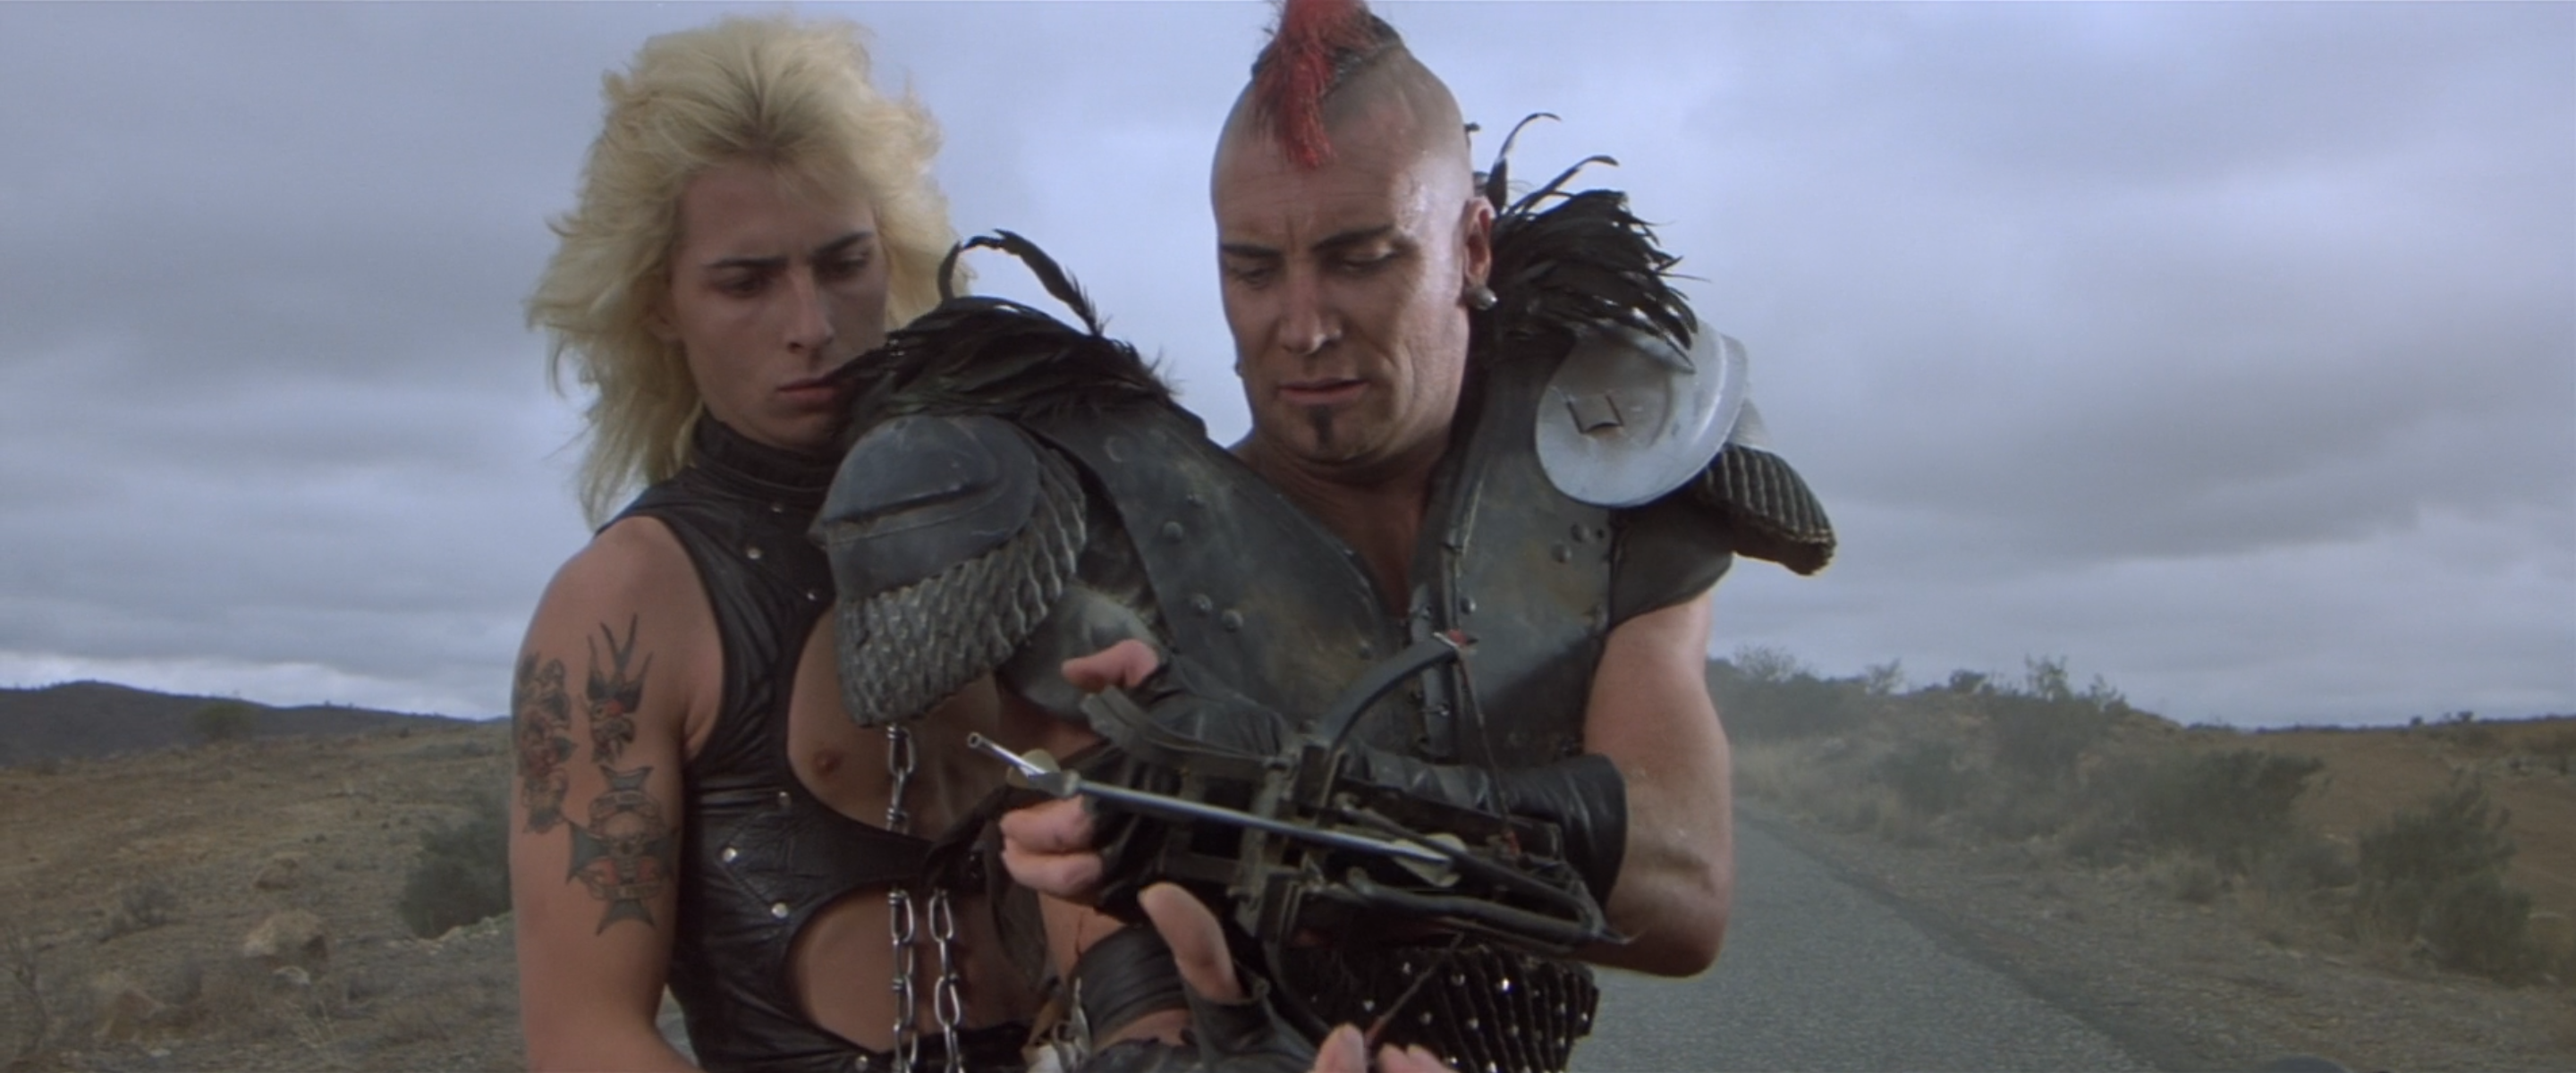 Mad Max 2 The Road Warrior Hd Wallpaper Background